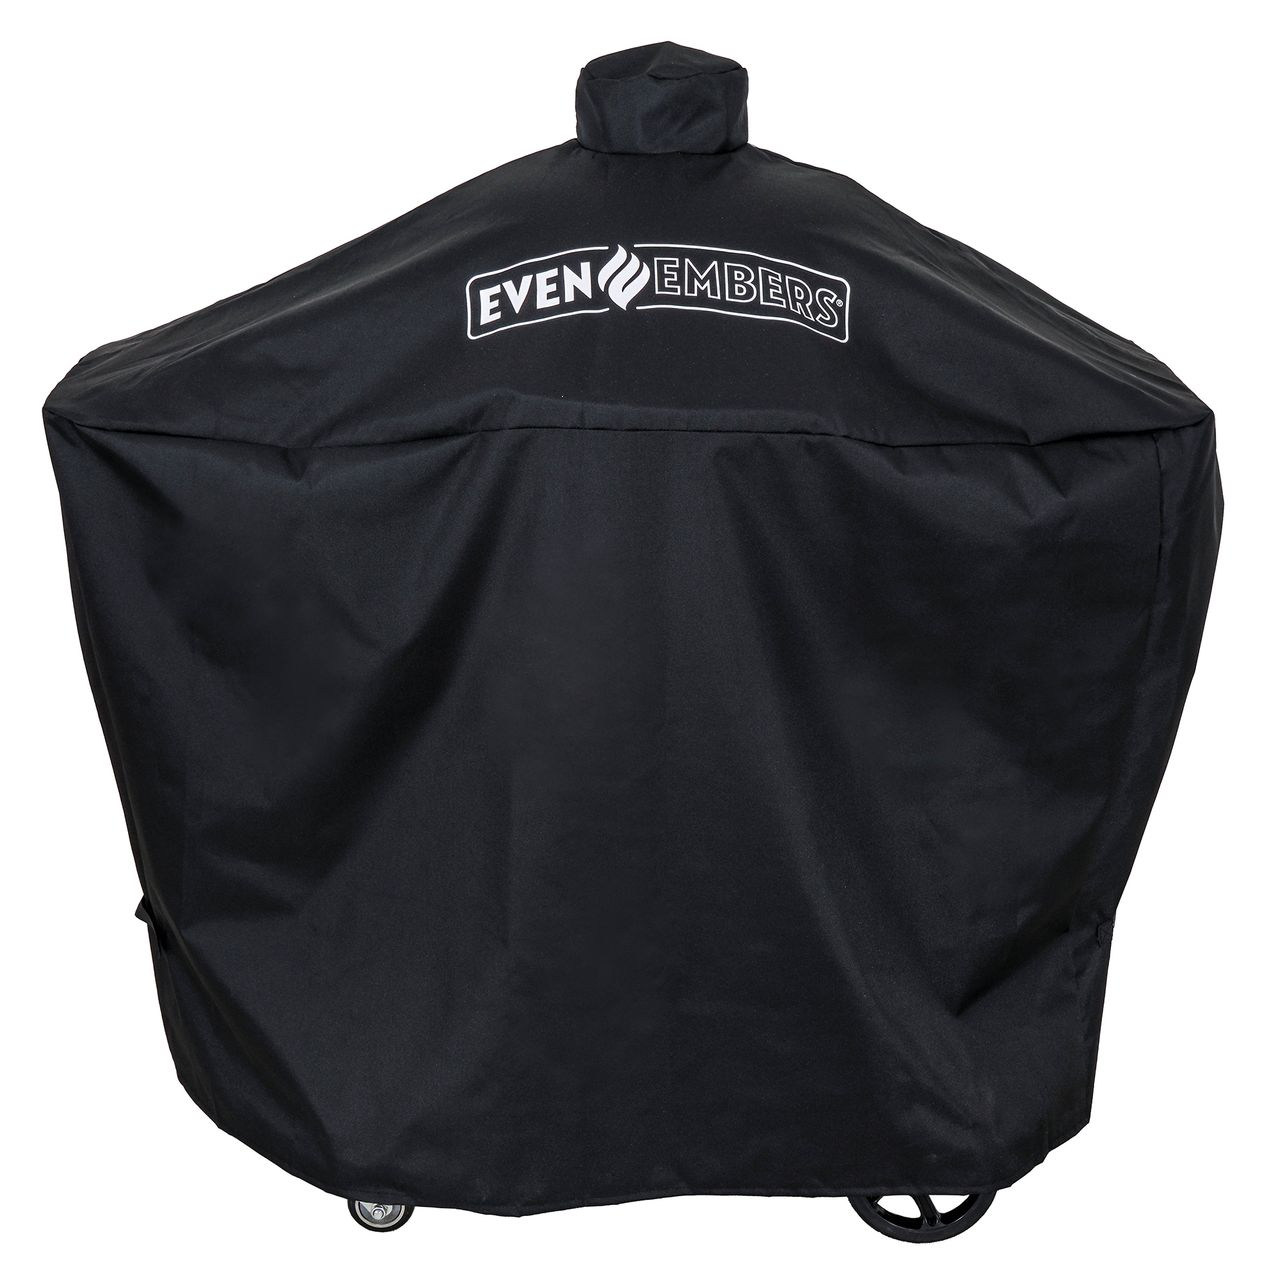 Even Embers Ceramic Egg Grill Cover